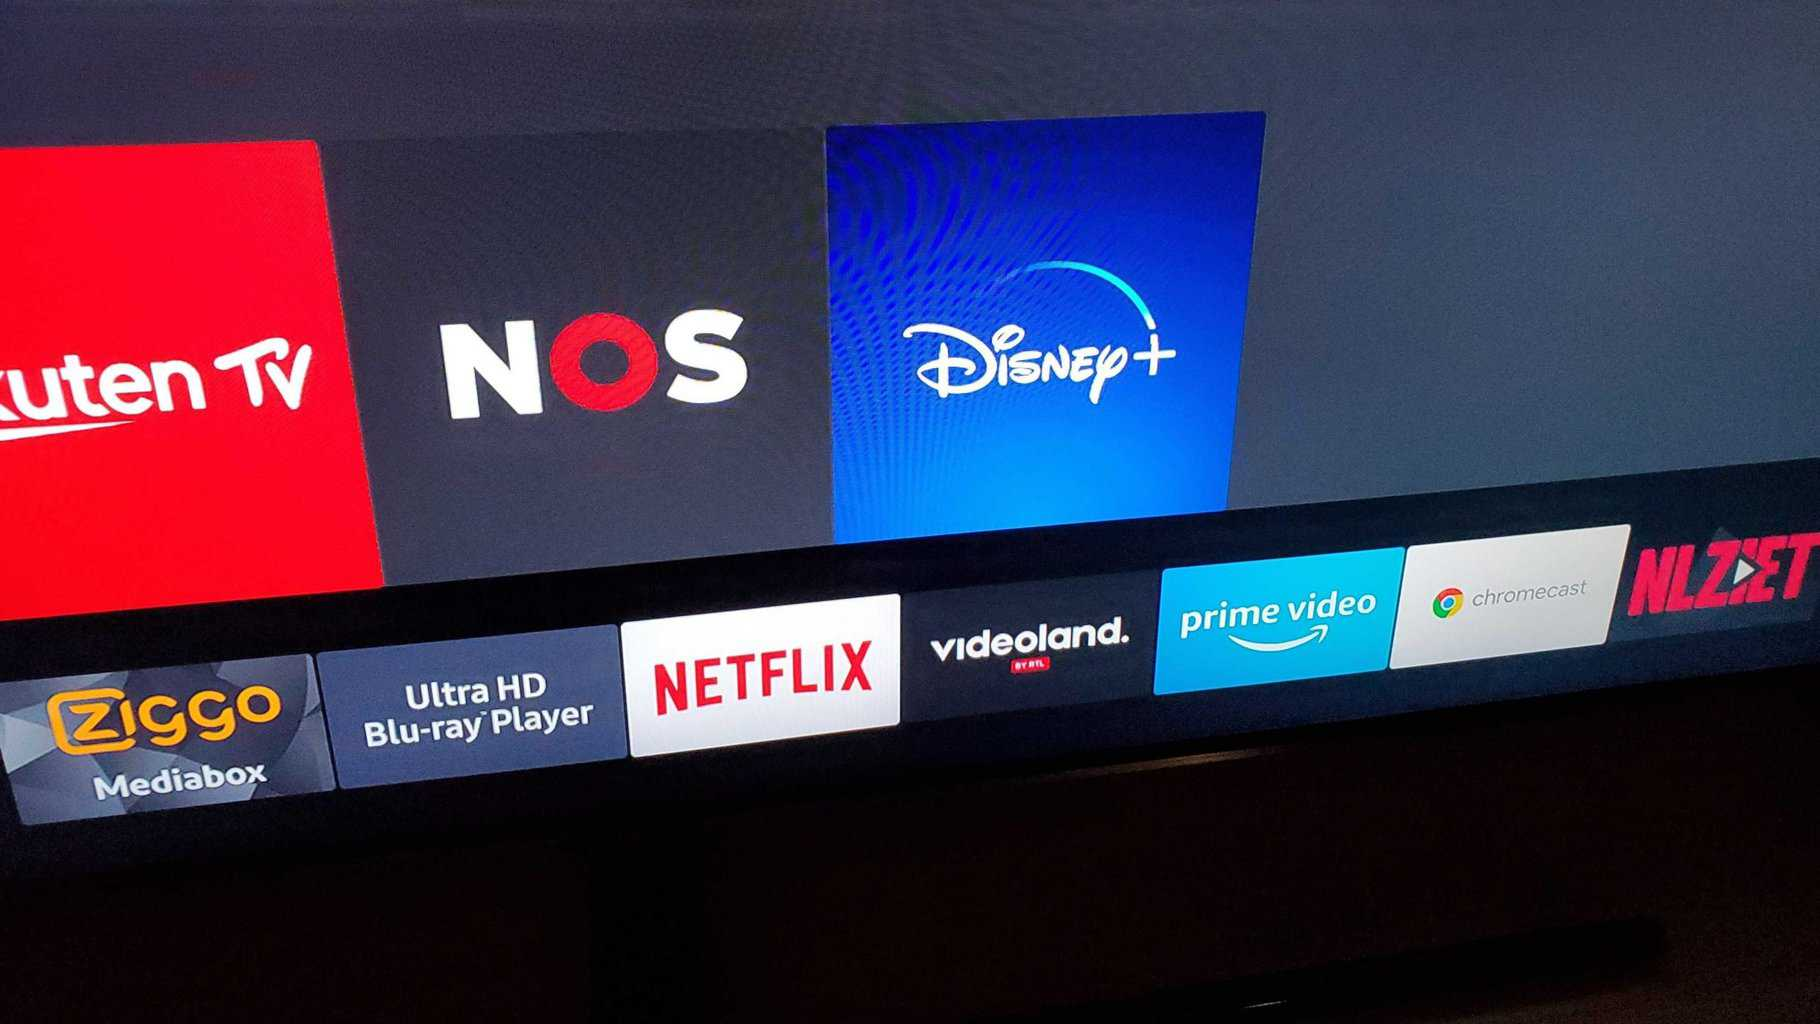 Shows Disney plus on the TV screen, ready to be selected and added to home screen